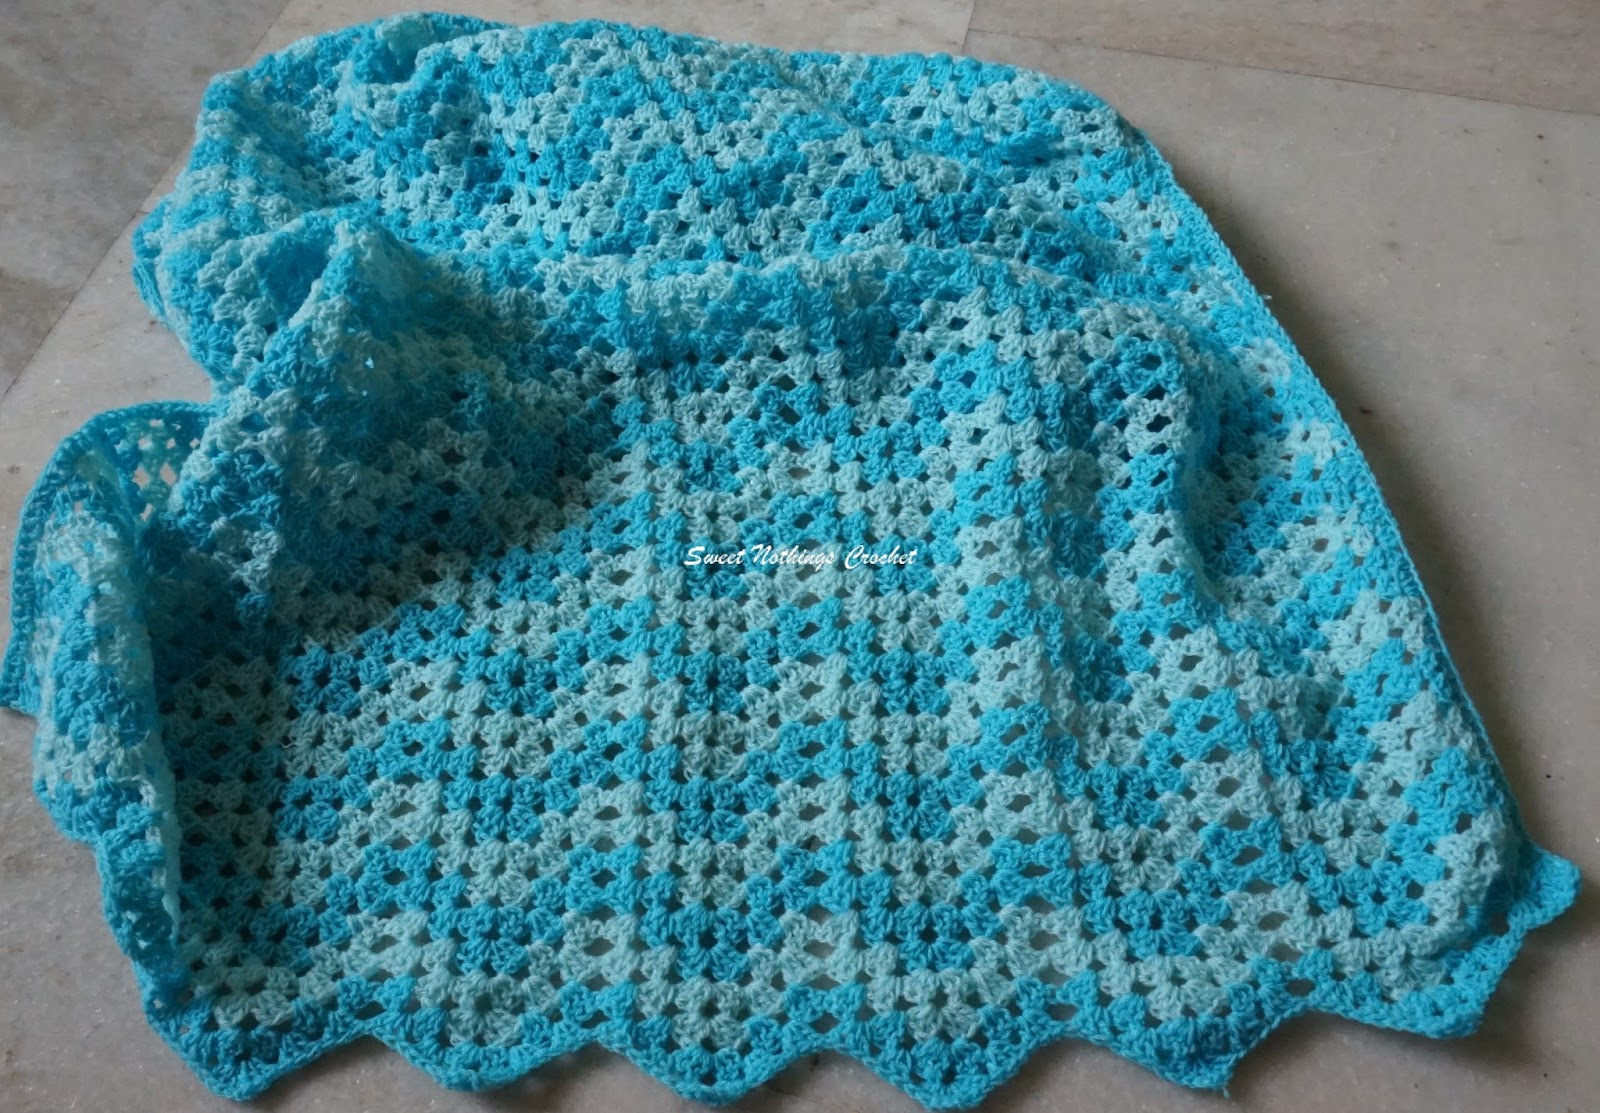 Sweet Nothings Crochet: GRANNY RIPPLE AFGHAN FOR A BABY BOY